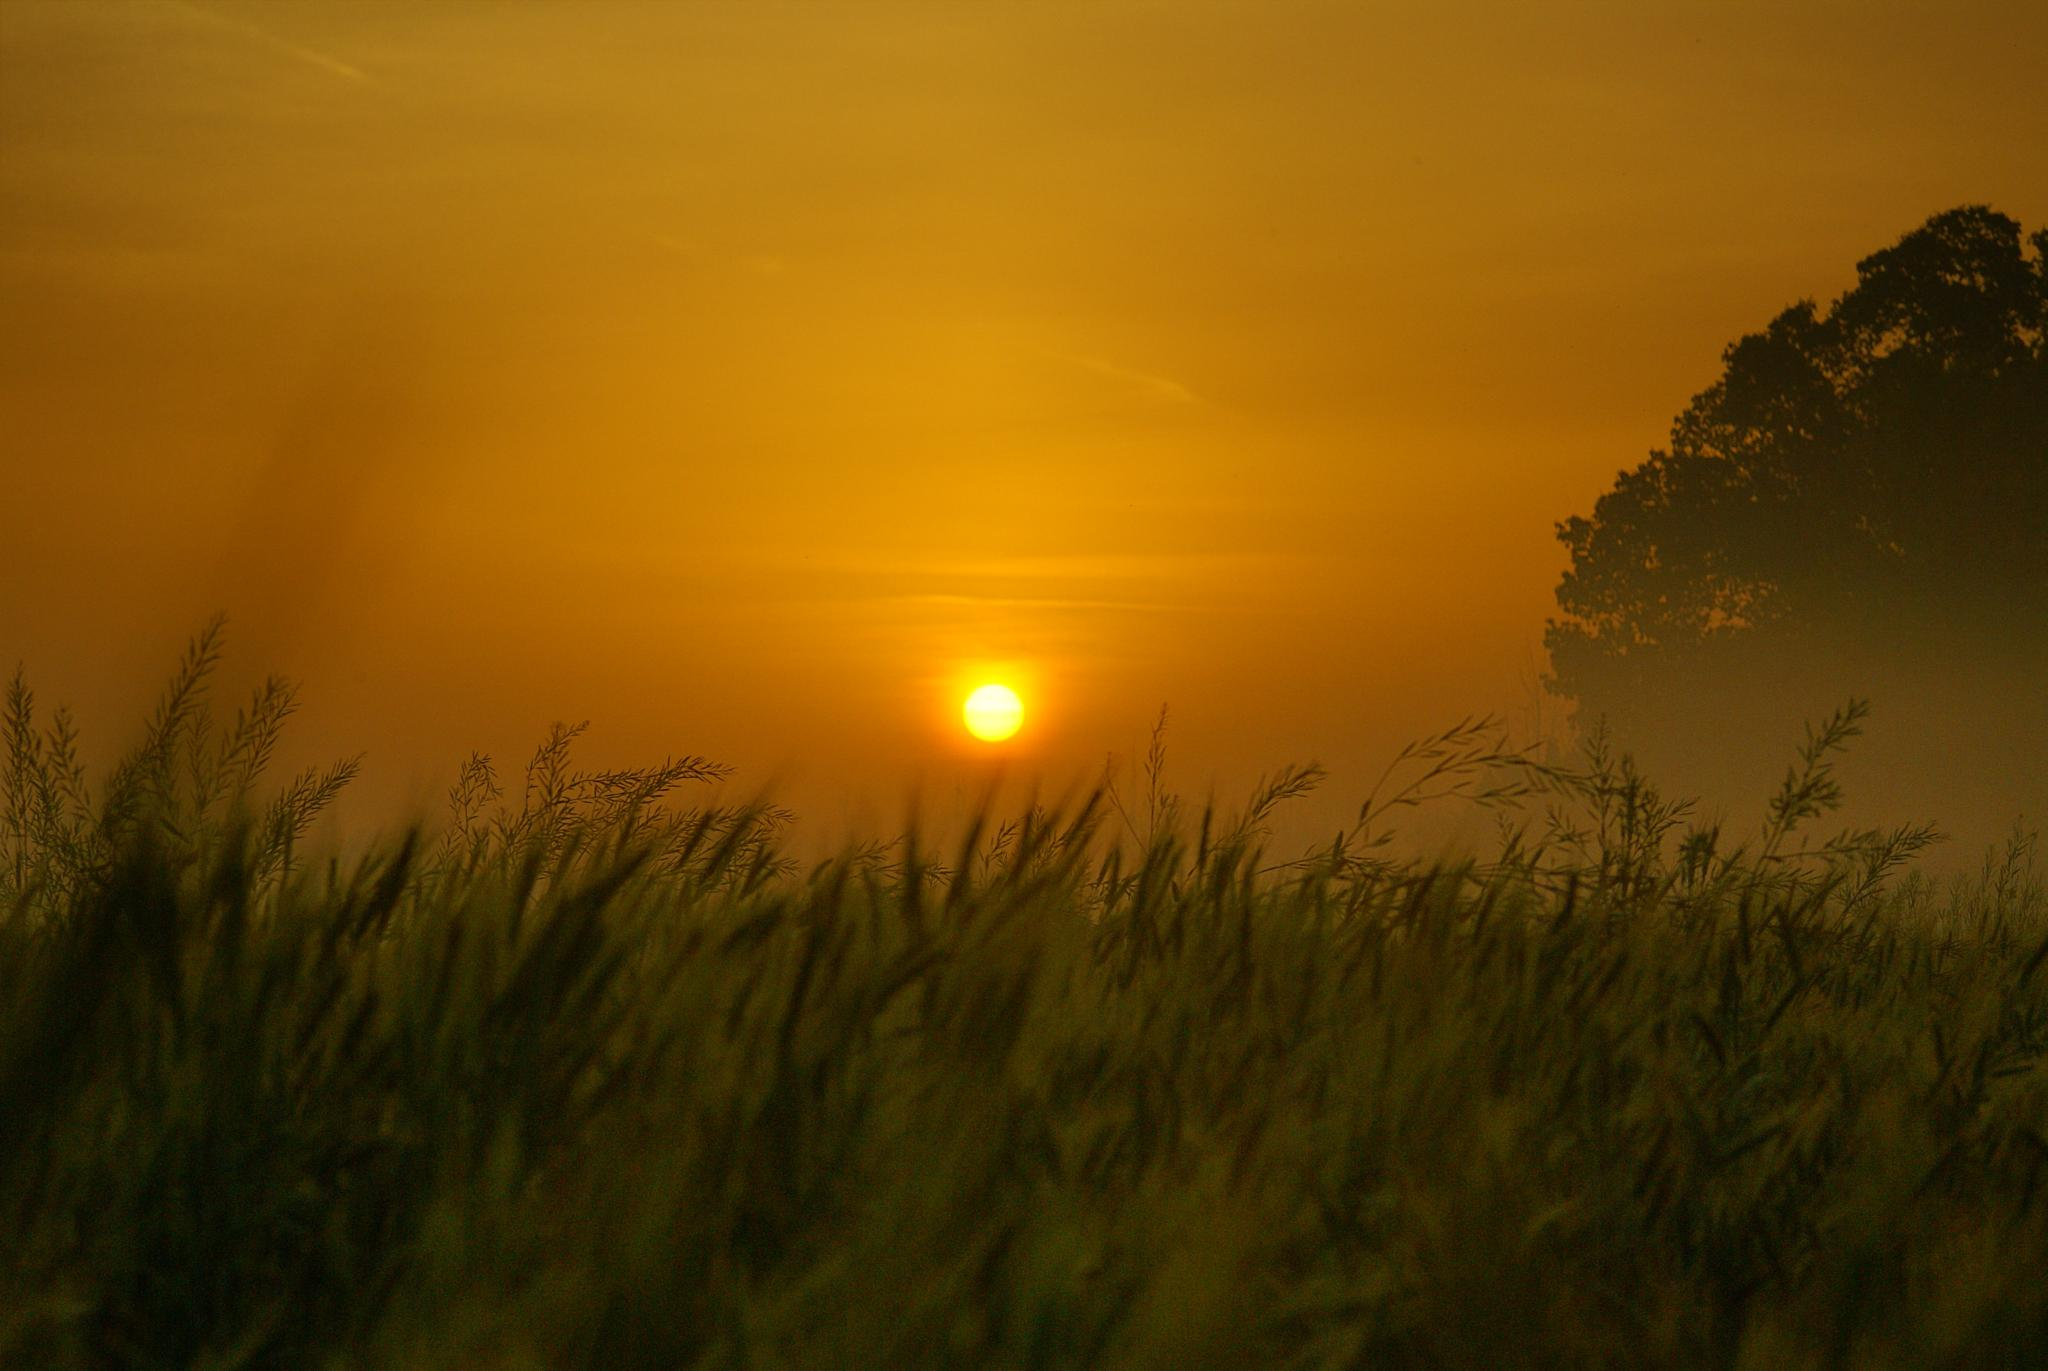 Morning in Field by Mohsan Haidry